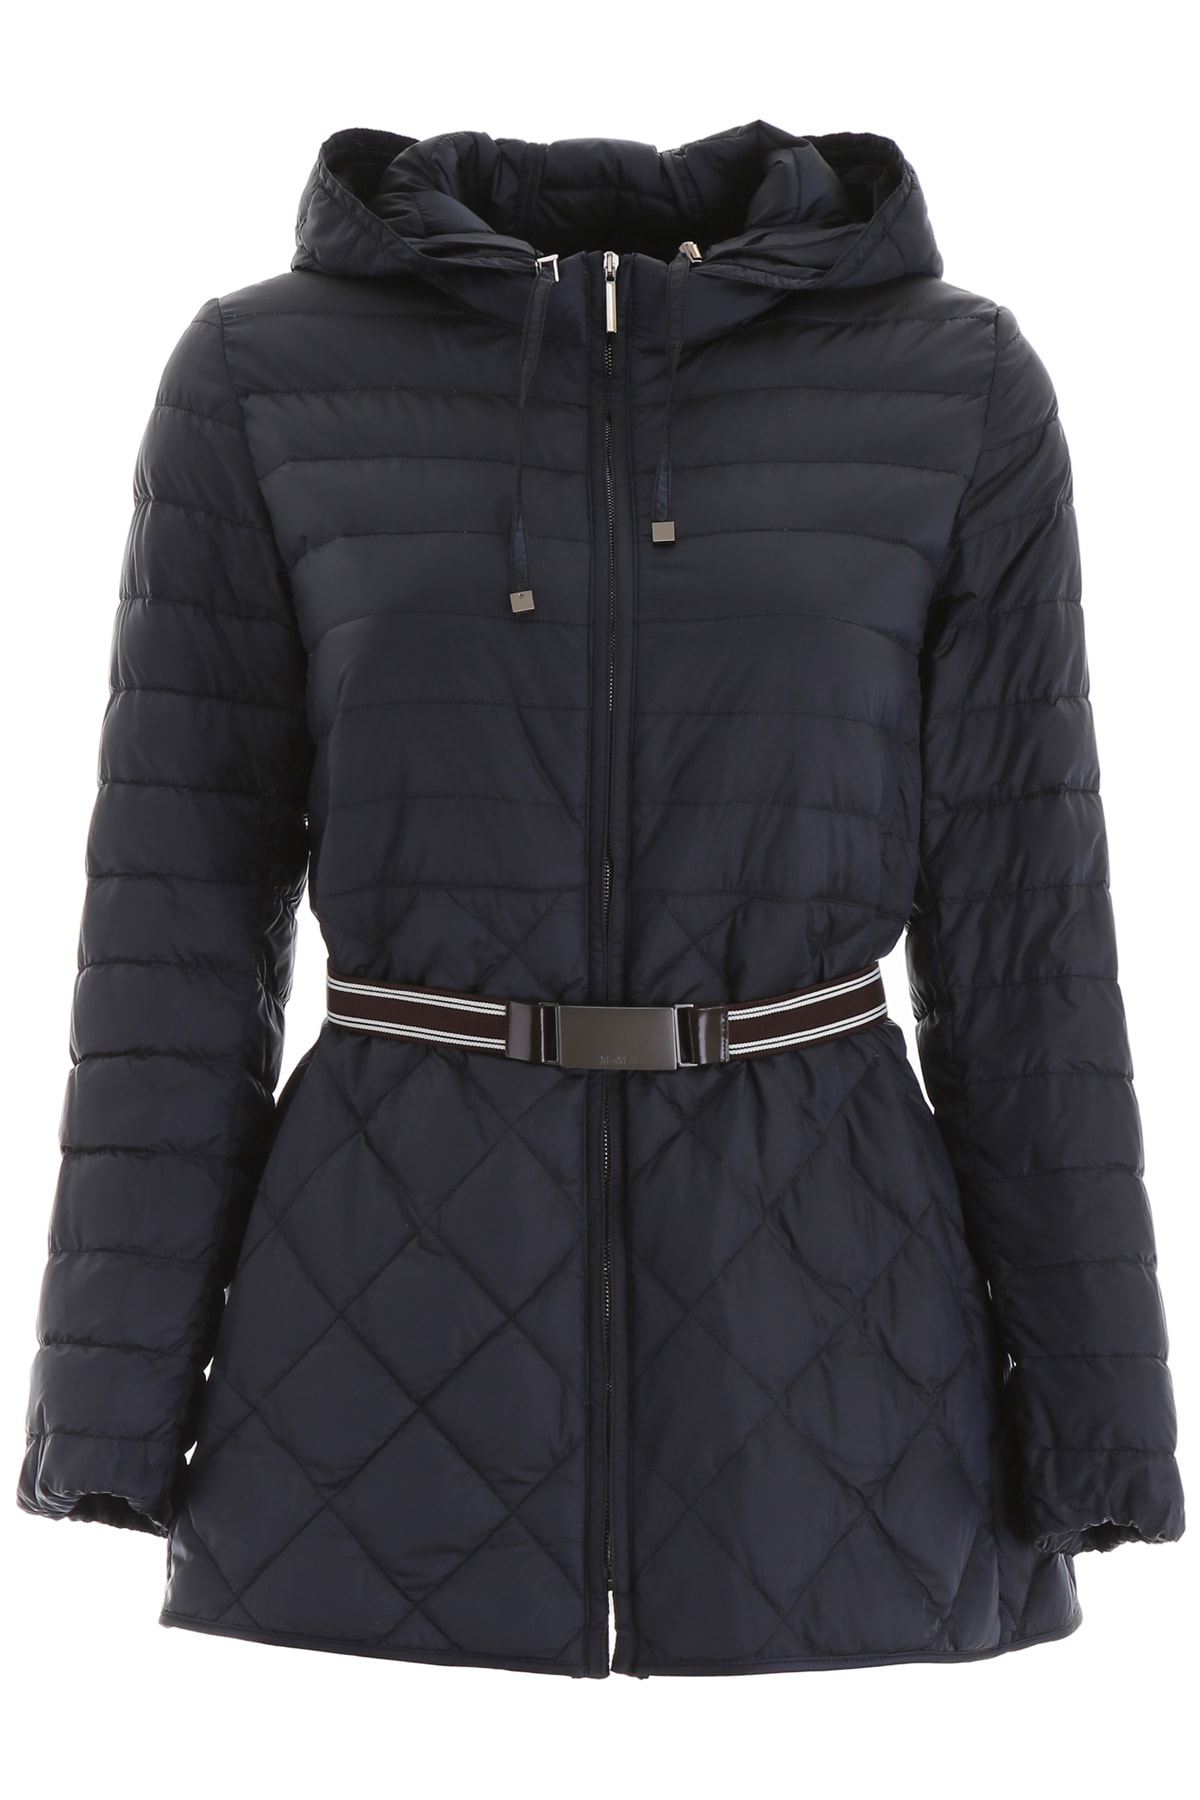 S Max Mara Here is The Cube Trevis Puffer Jacket